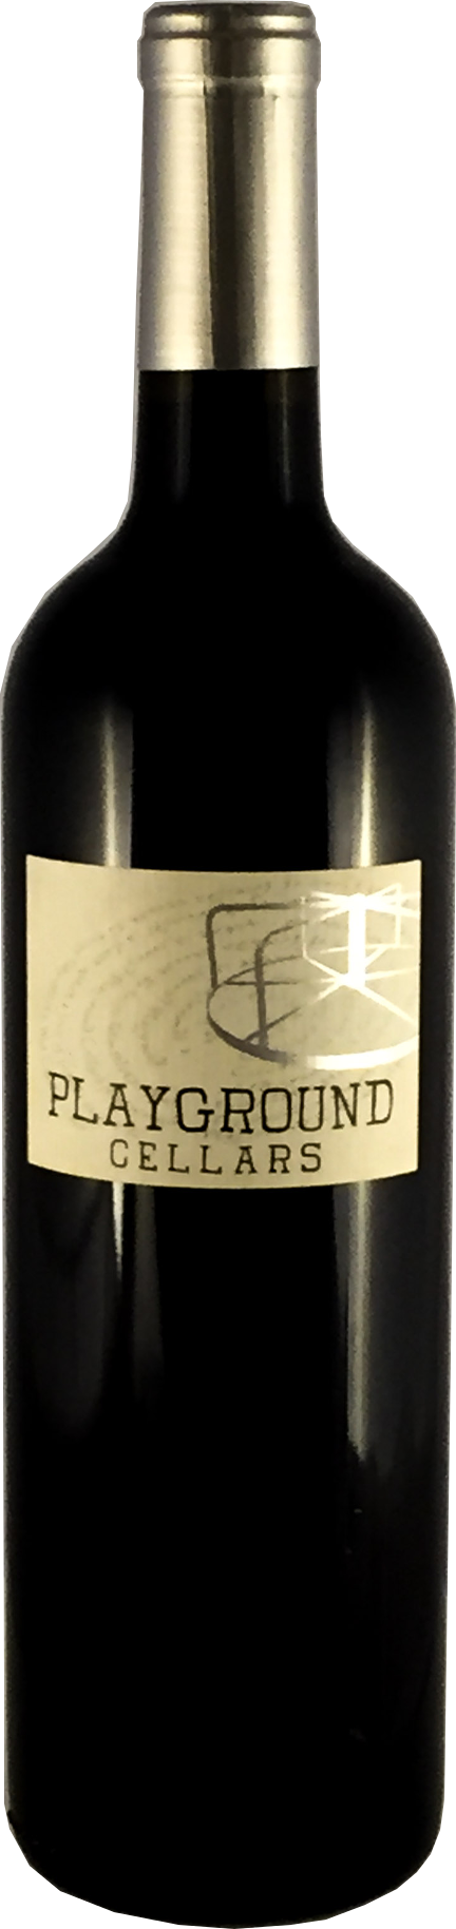 2013 Playground Cellars Playground Proprietary Red - Qorkz